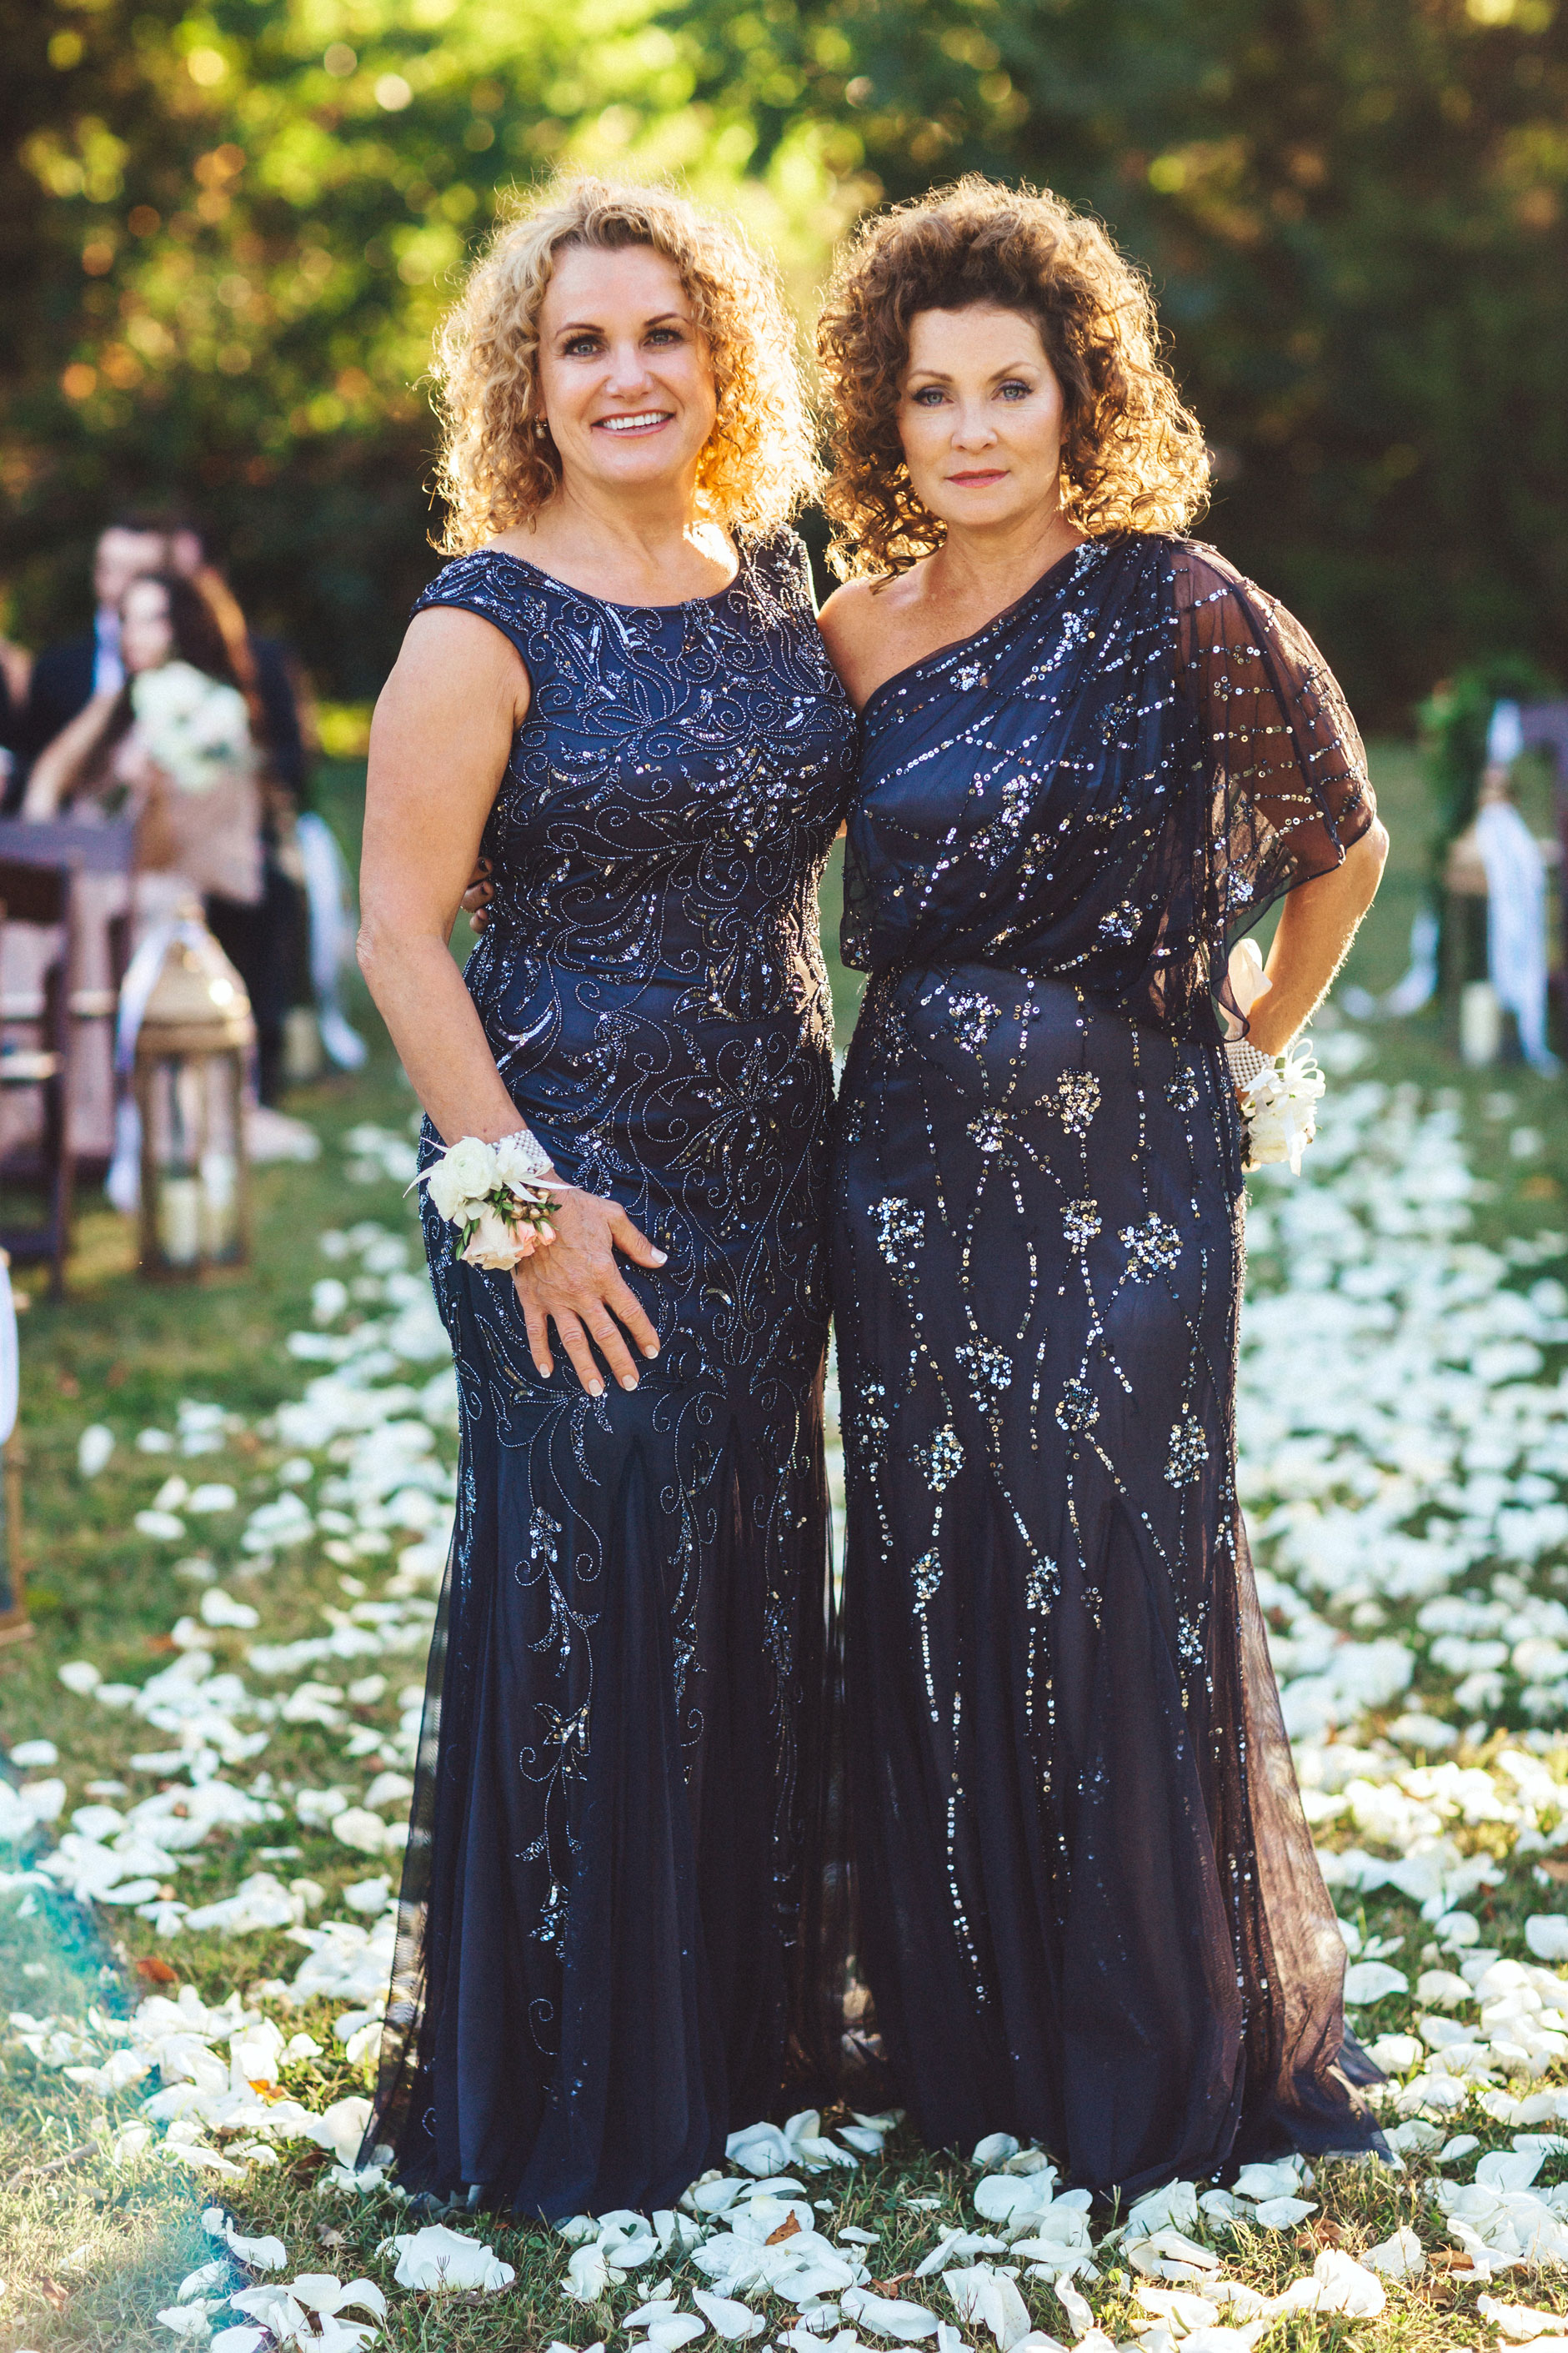 Me & Mr. Jones Wedding, Mother of The Bride, Mother of the Groom, Adrianna Papell Beaded Gown, Matching Mothers, Black Tie Wedding, Adrianna Papell One Shoulder Gown